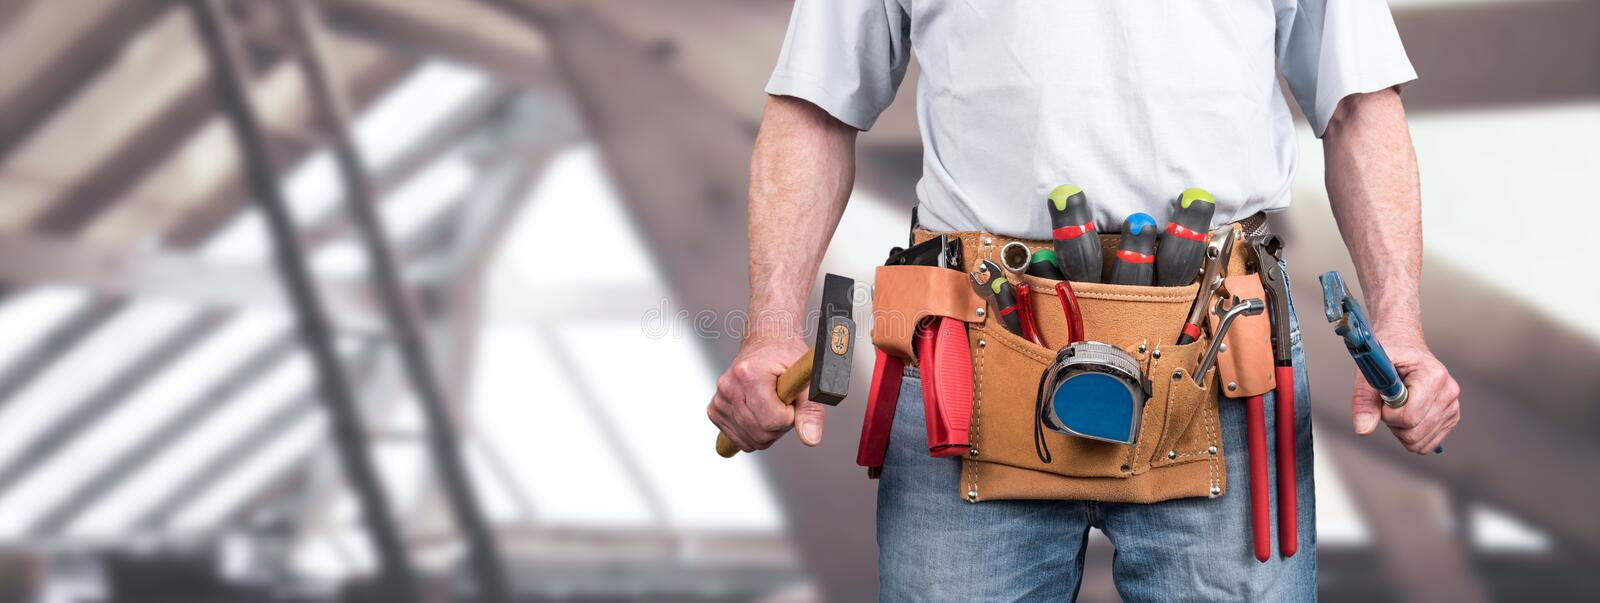 Building worker with tool belt stock photos